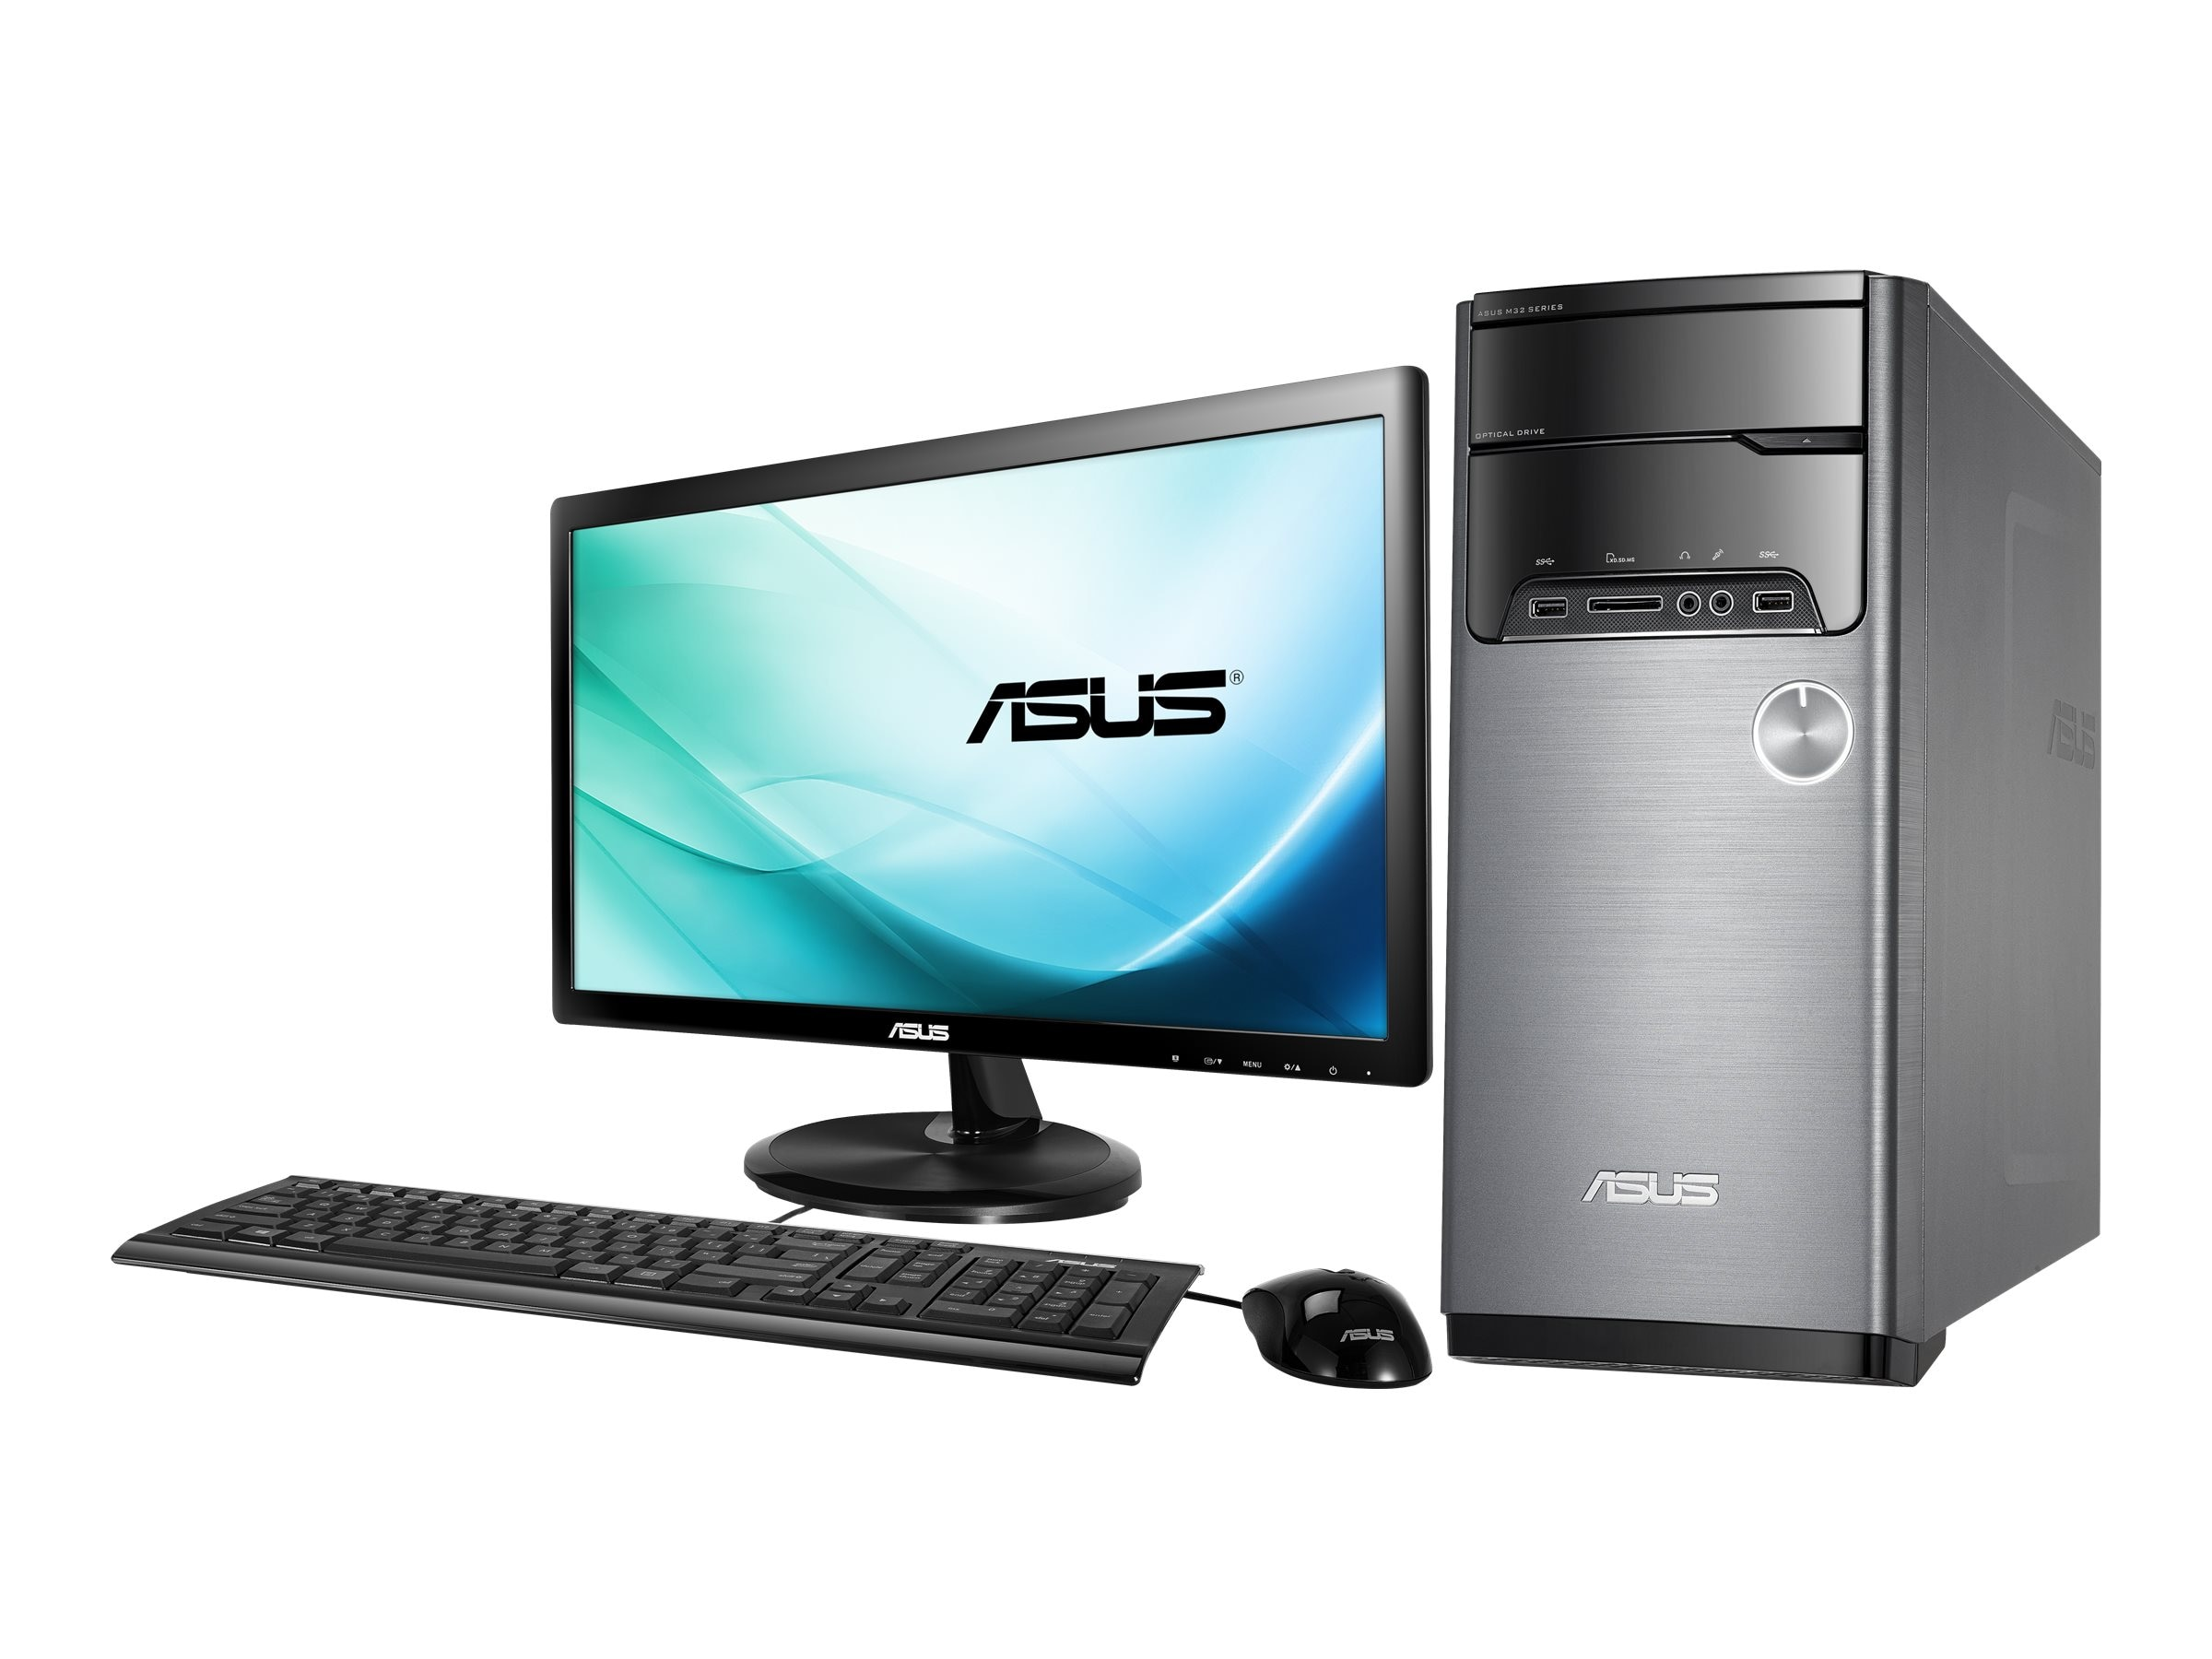 Asus M32AD-US007T Desktop Core i5-4460 3.4GHz 8GB 1TB W1064, M32AD-US007T, 30790200, Desktops